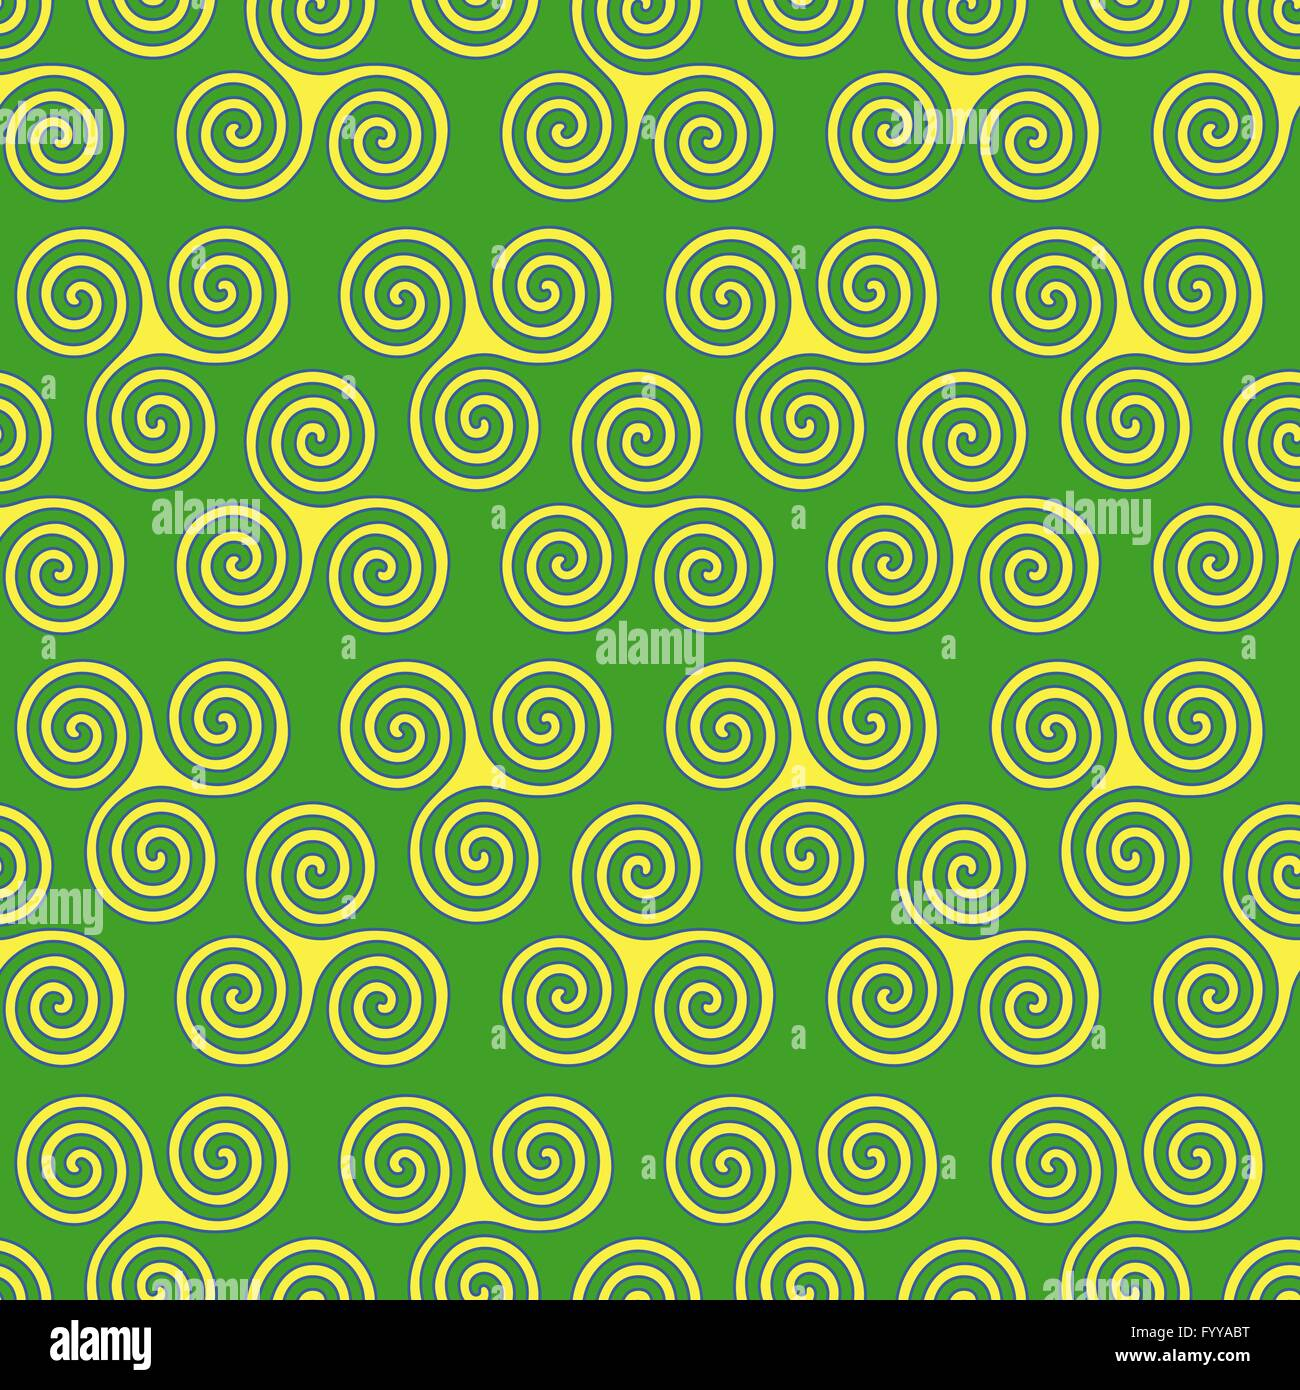 Seamless Vector Pattern With Swirling Triple Spiral Or Triskele A